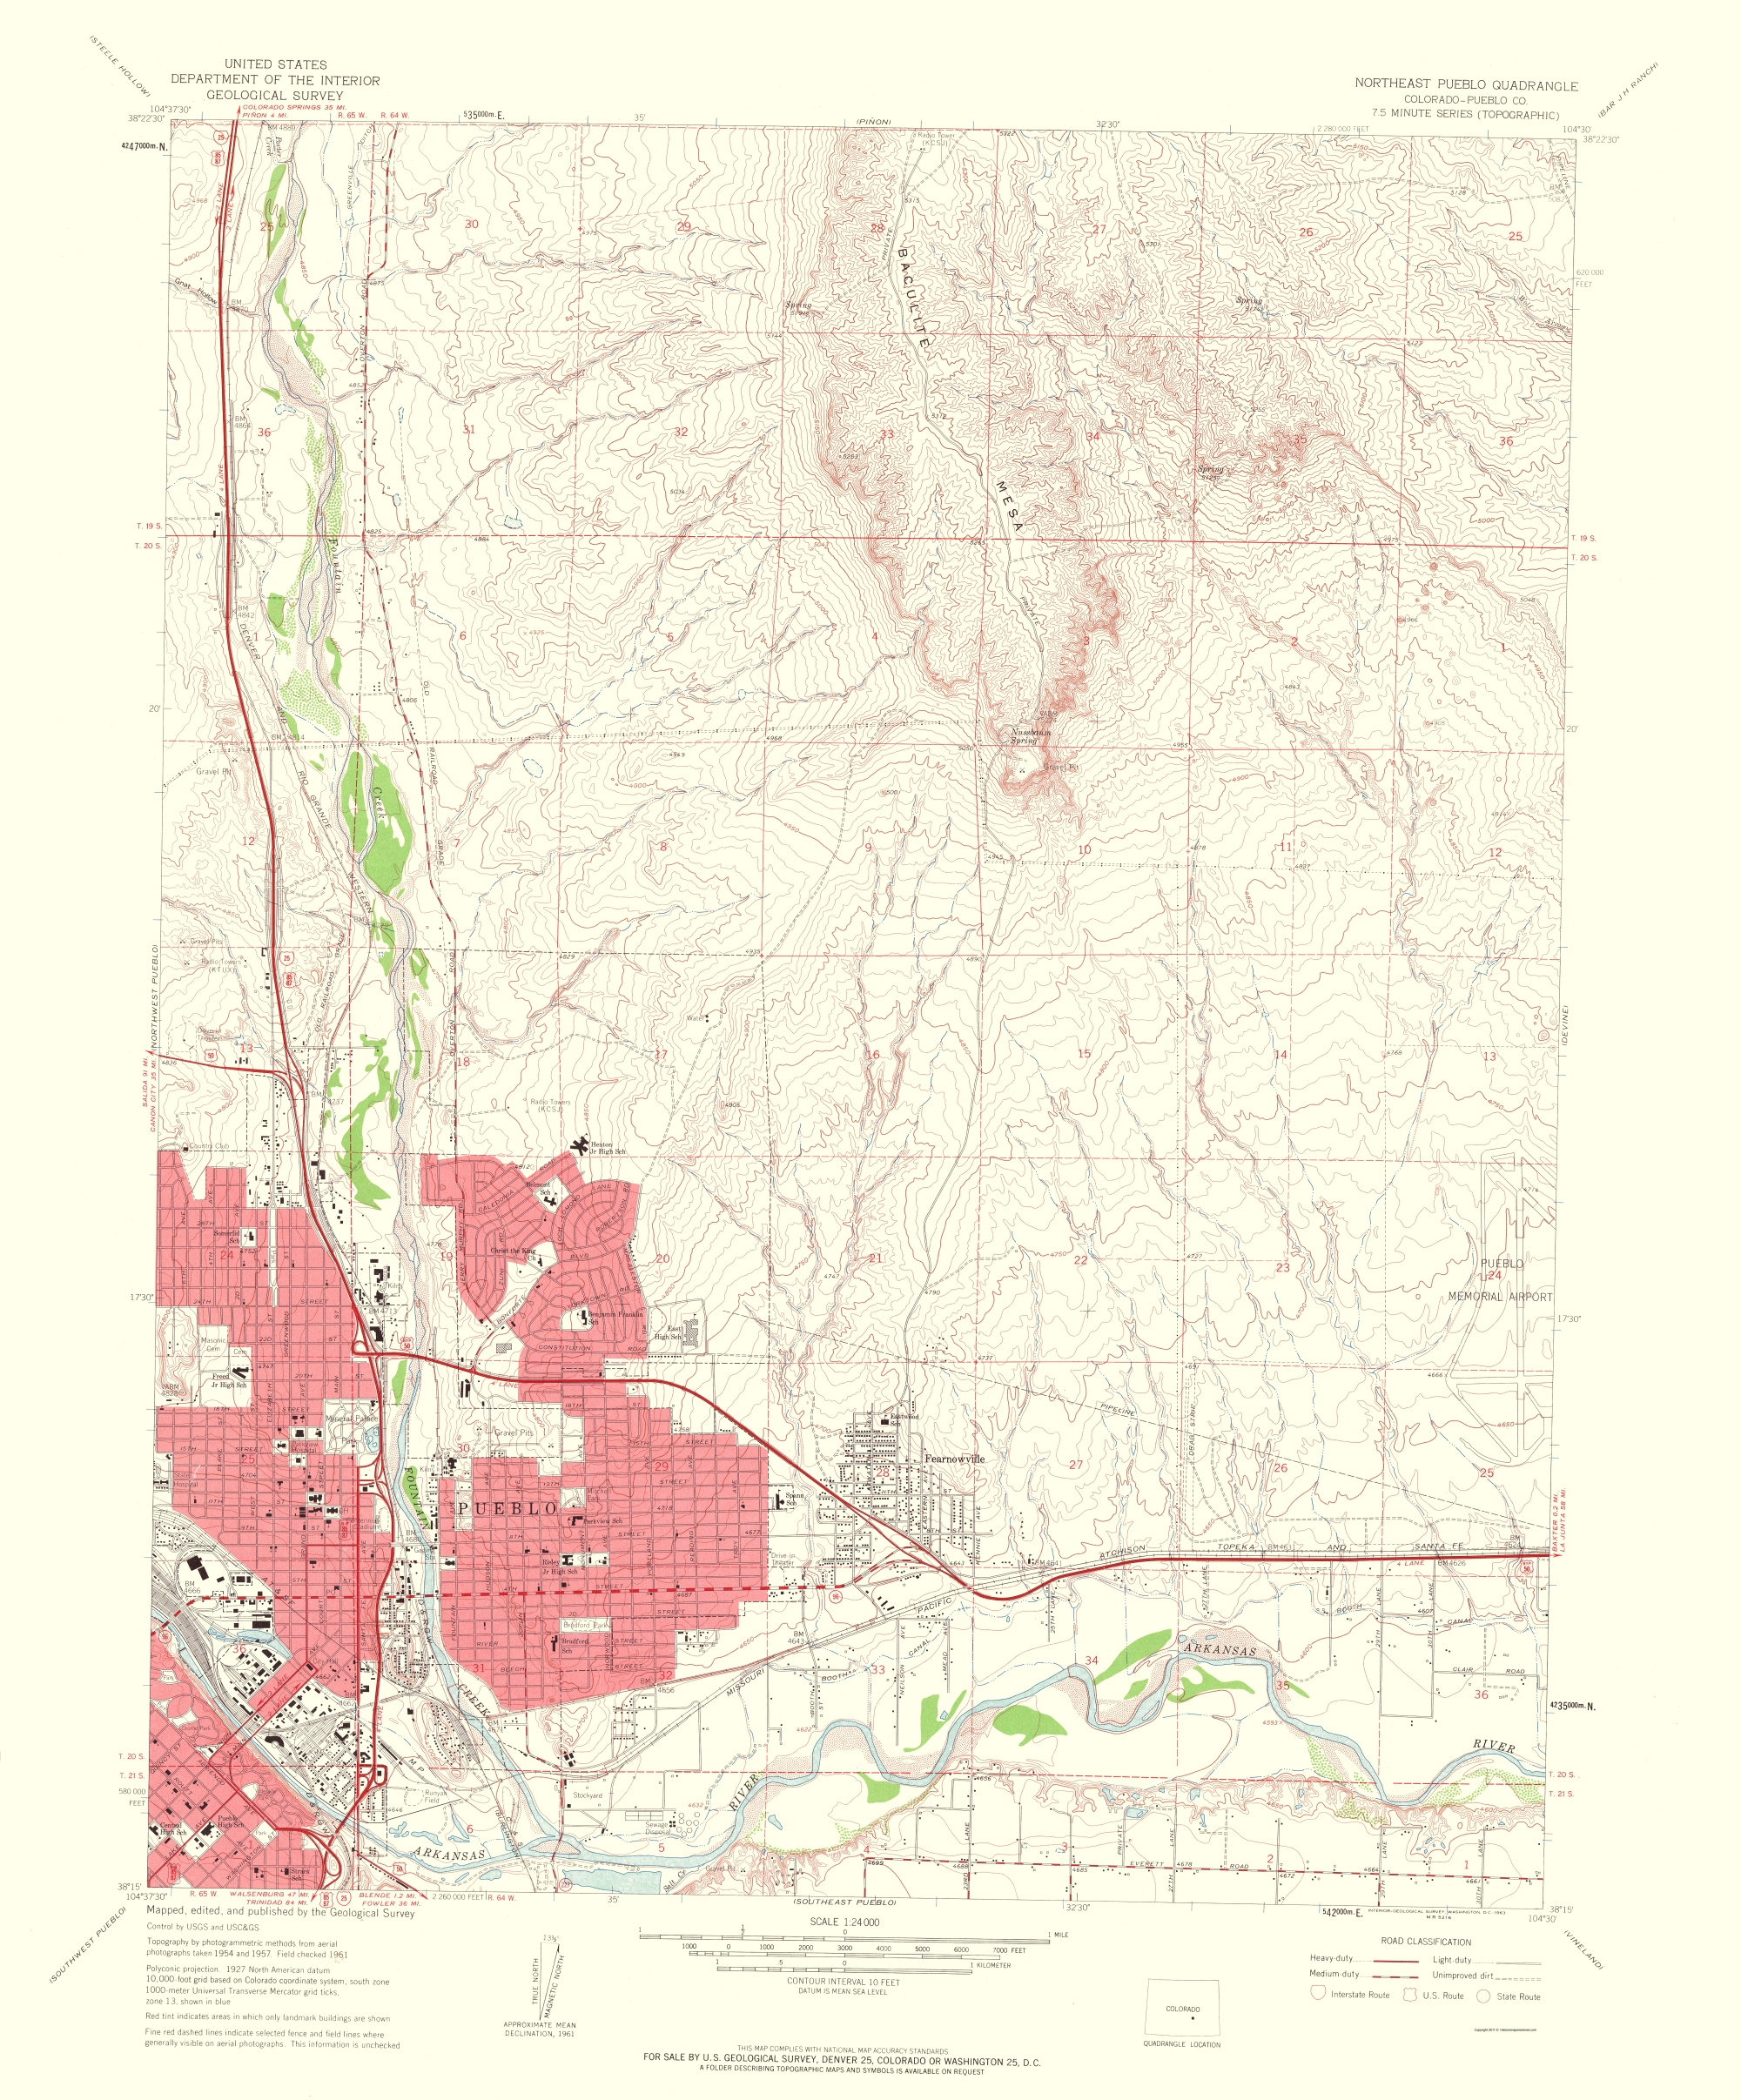 Topographical Map - North East Pueblo Colorado Quad - USGS 1963 - 23 x 27.75